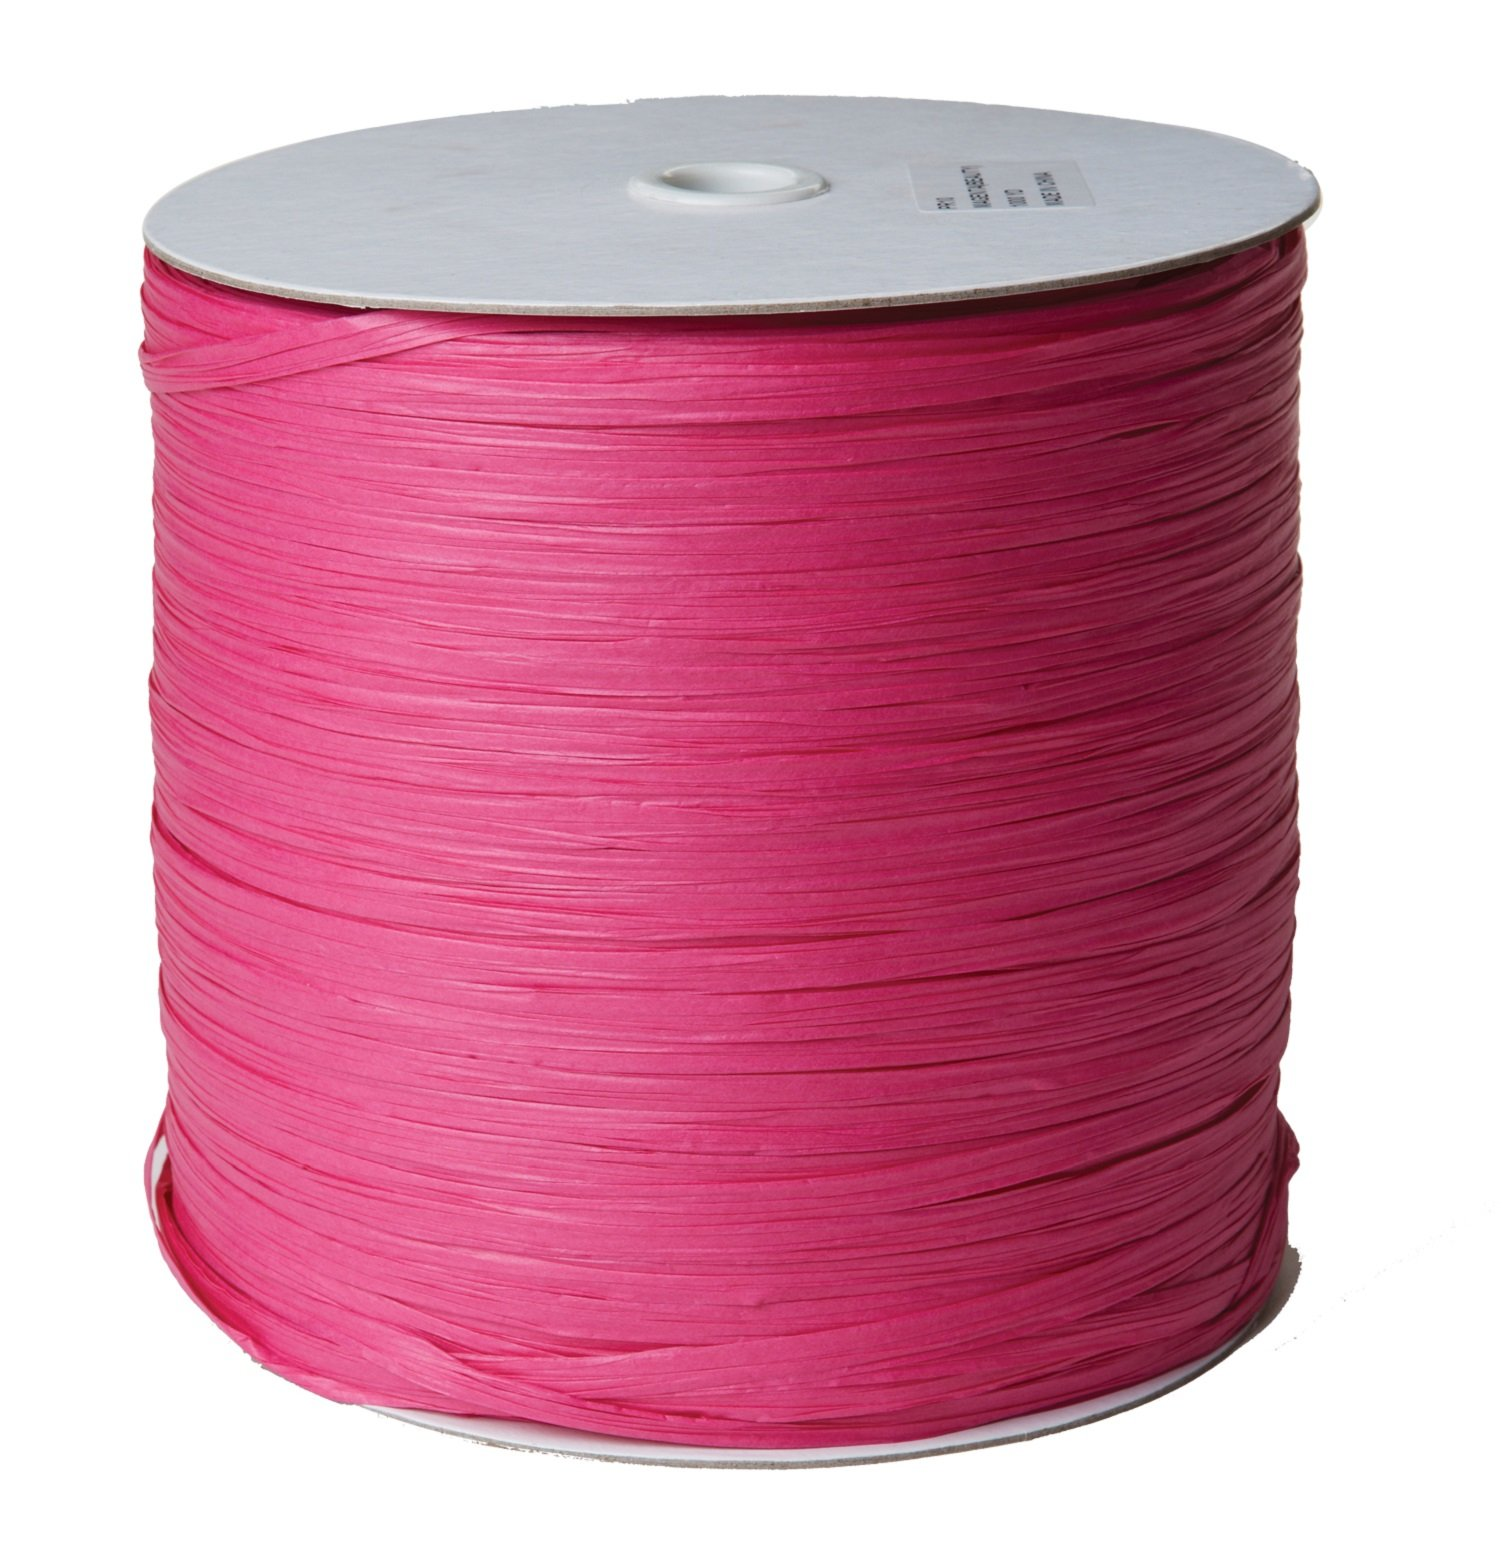 Jillson Roberts .25'' x 1000 Yard Bulk Spool Paper Raffia Ribbon Available in 16 Colors, Magenta by Jillson Roberts